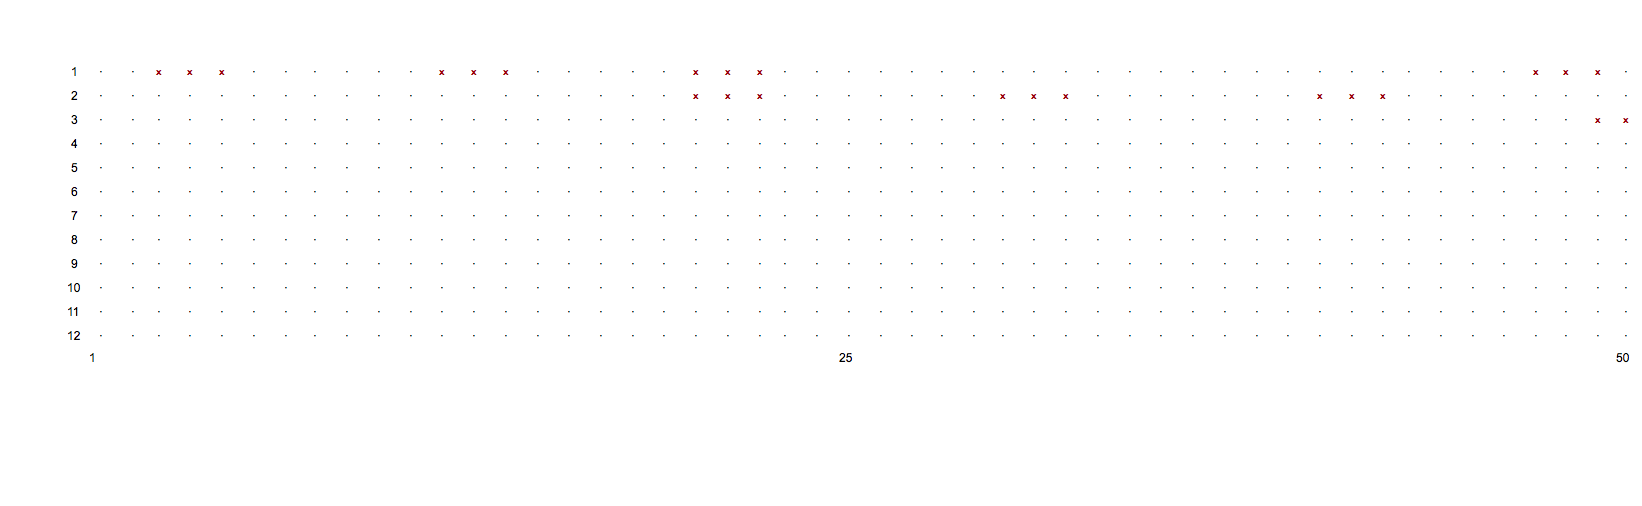 Excerpt of Chromochord Installation Score. The x's tell each of the 12 lights in the chromochord when to turn on. These in turn activate the proteins chemical reaction which is then turned into sound.